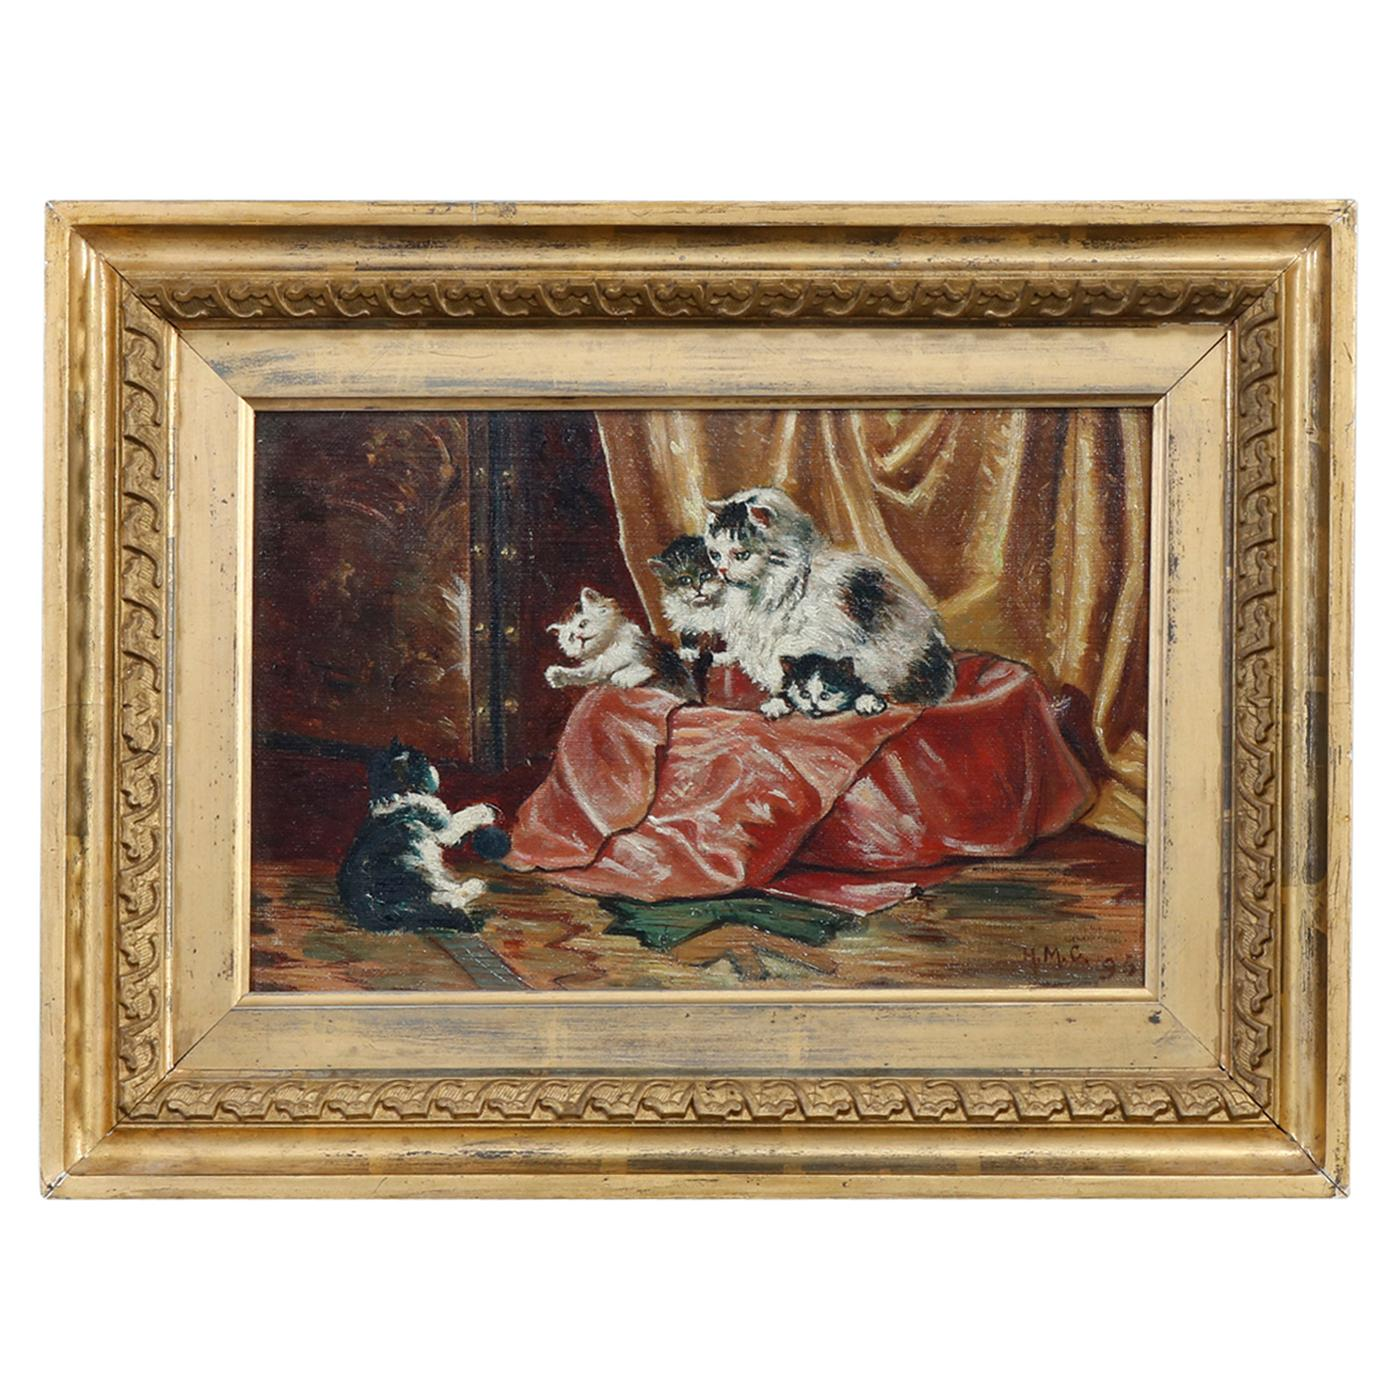 Antique Victorian Oil Painting Interior Scene with Kittens Playing, circa 1890